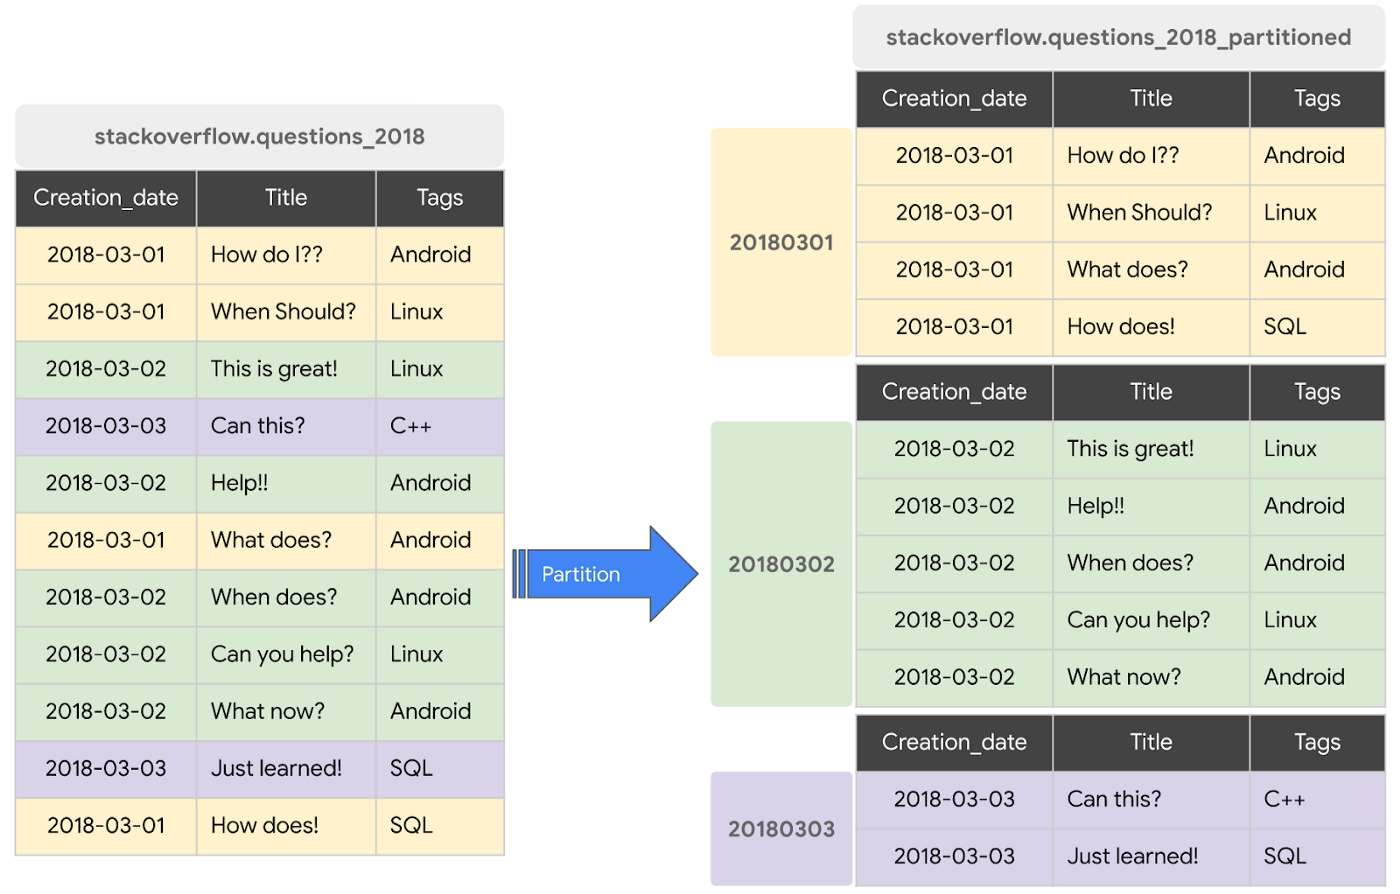 Stack Overflow questions 2018 partitioned